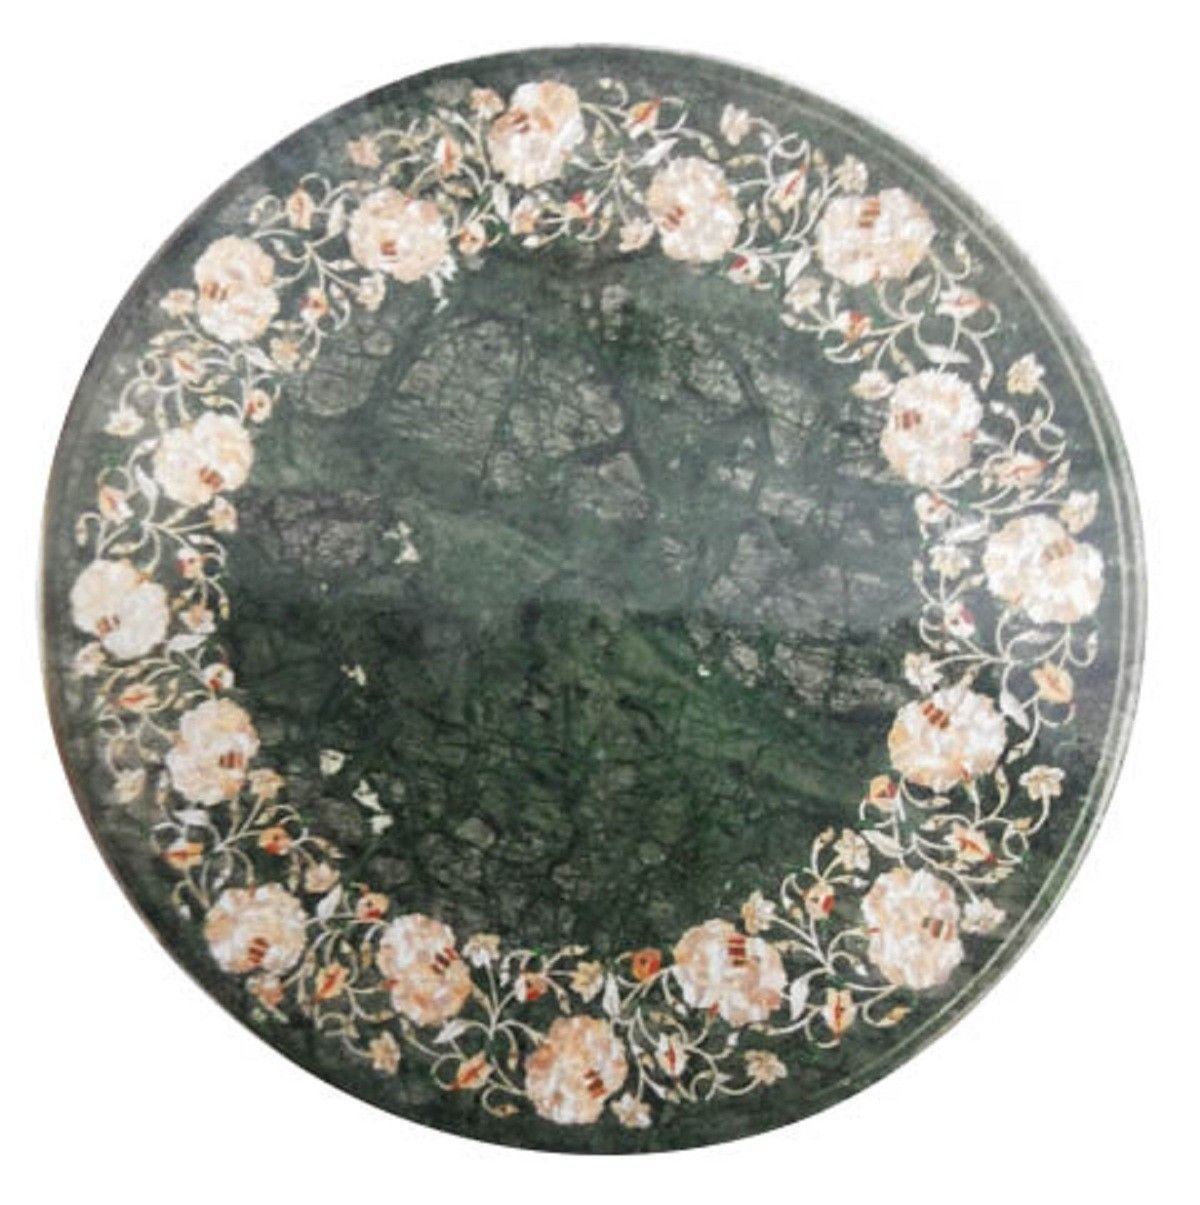 Marble Coffee Top Table Inlaid Mother of Pearl Floral Marquetry Furniture H913